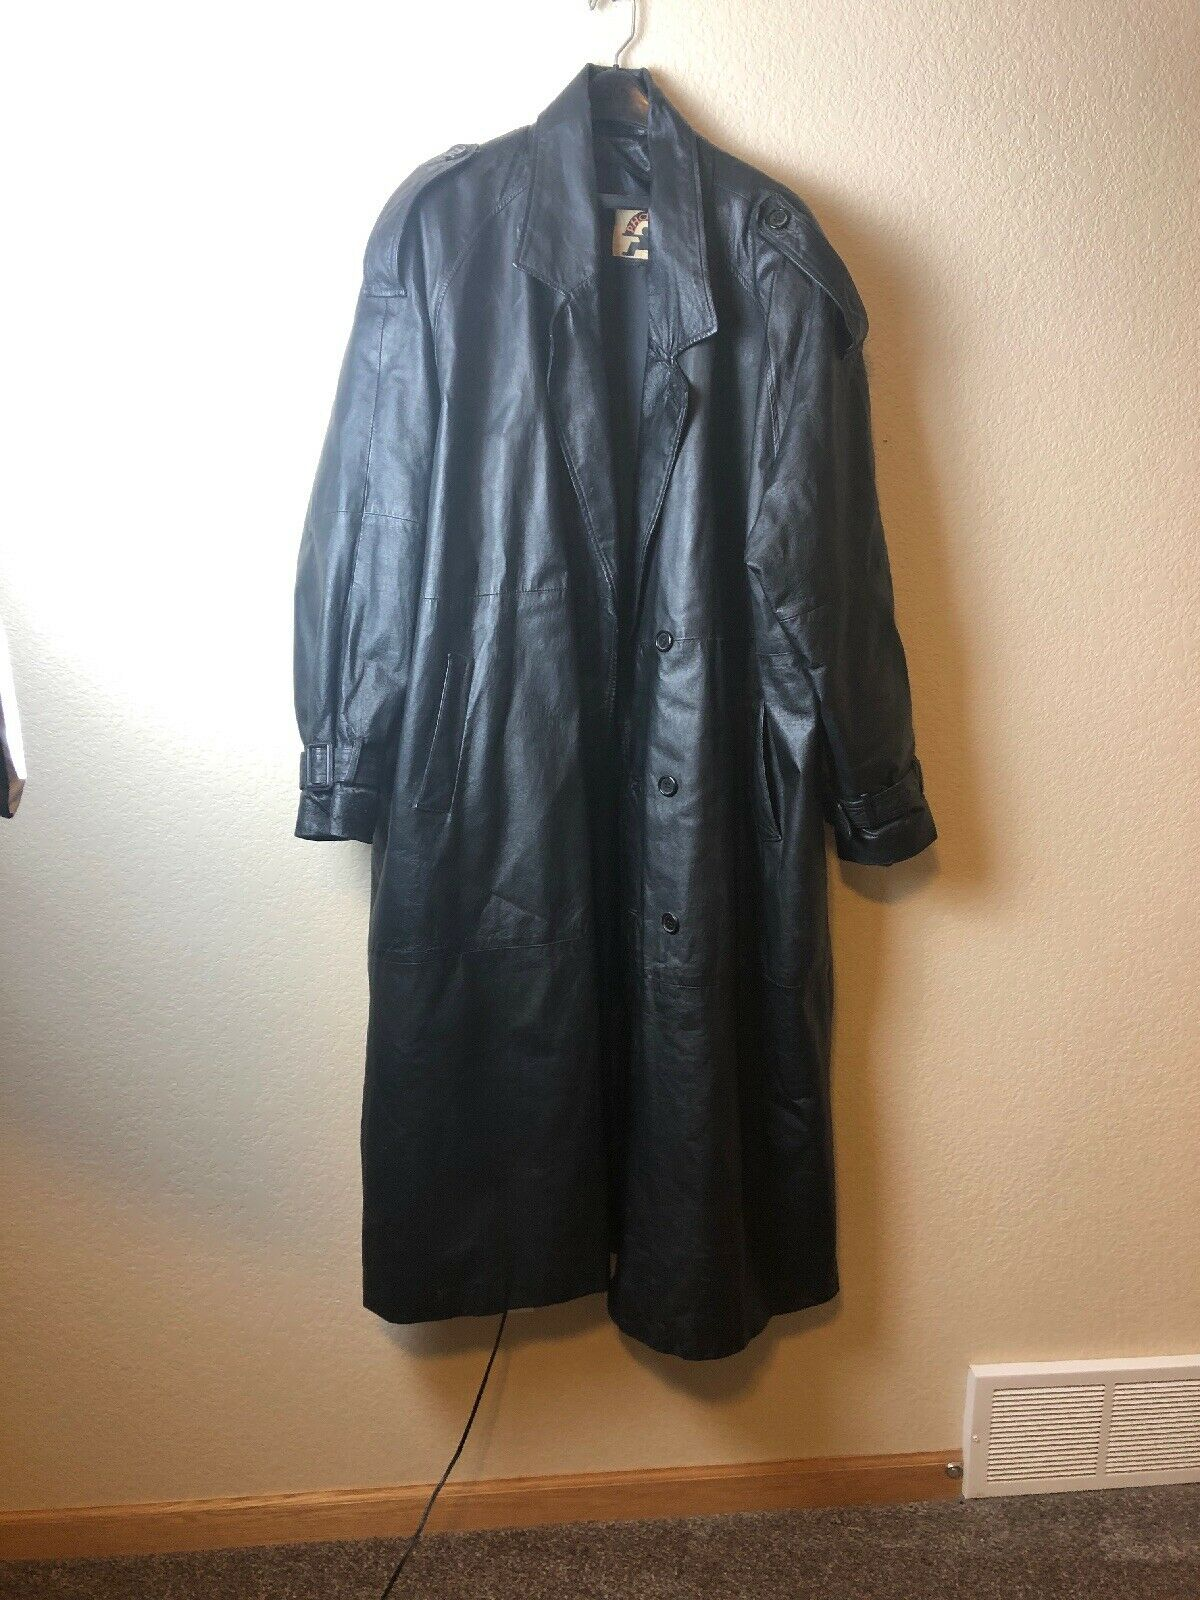 herren 3XL Bkack leder Trench Coat